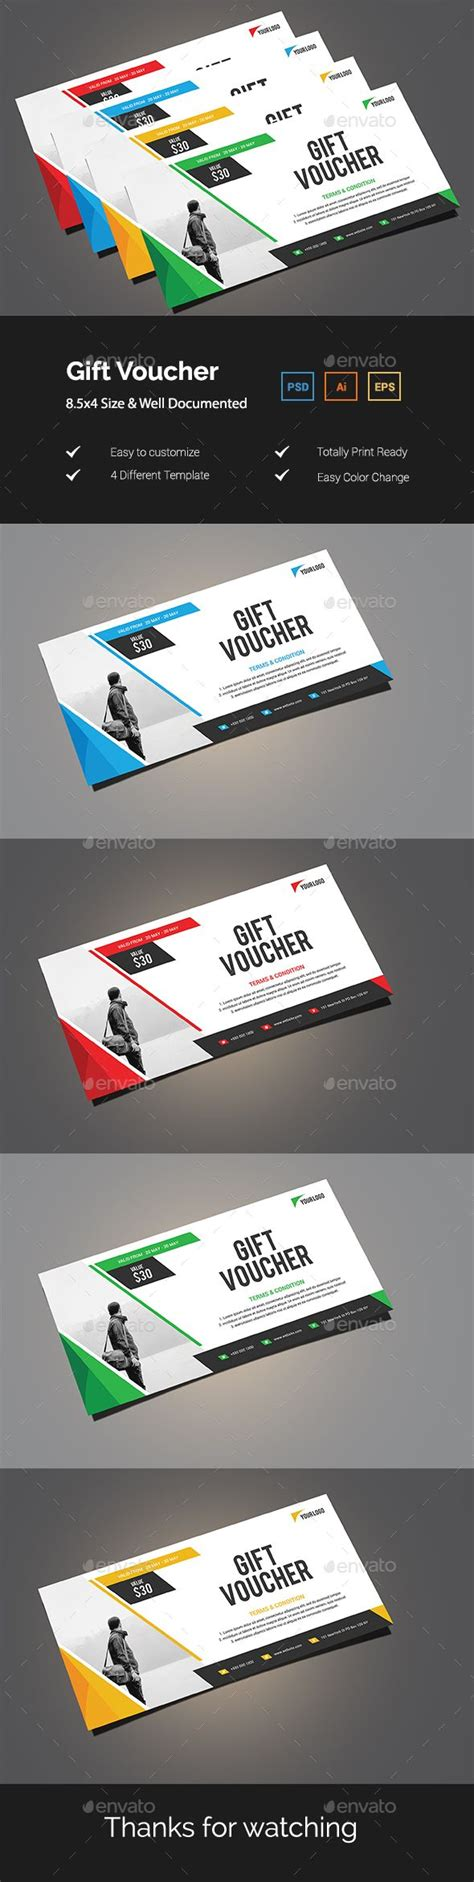 best 25 gift voucher design ideas on pinterest gift